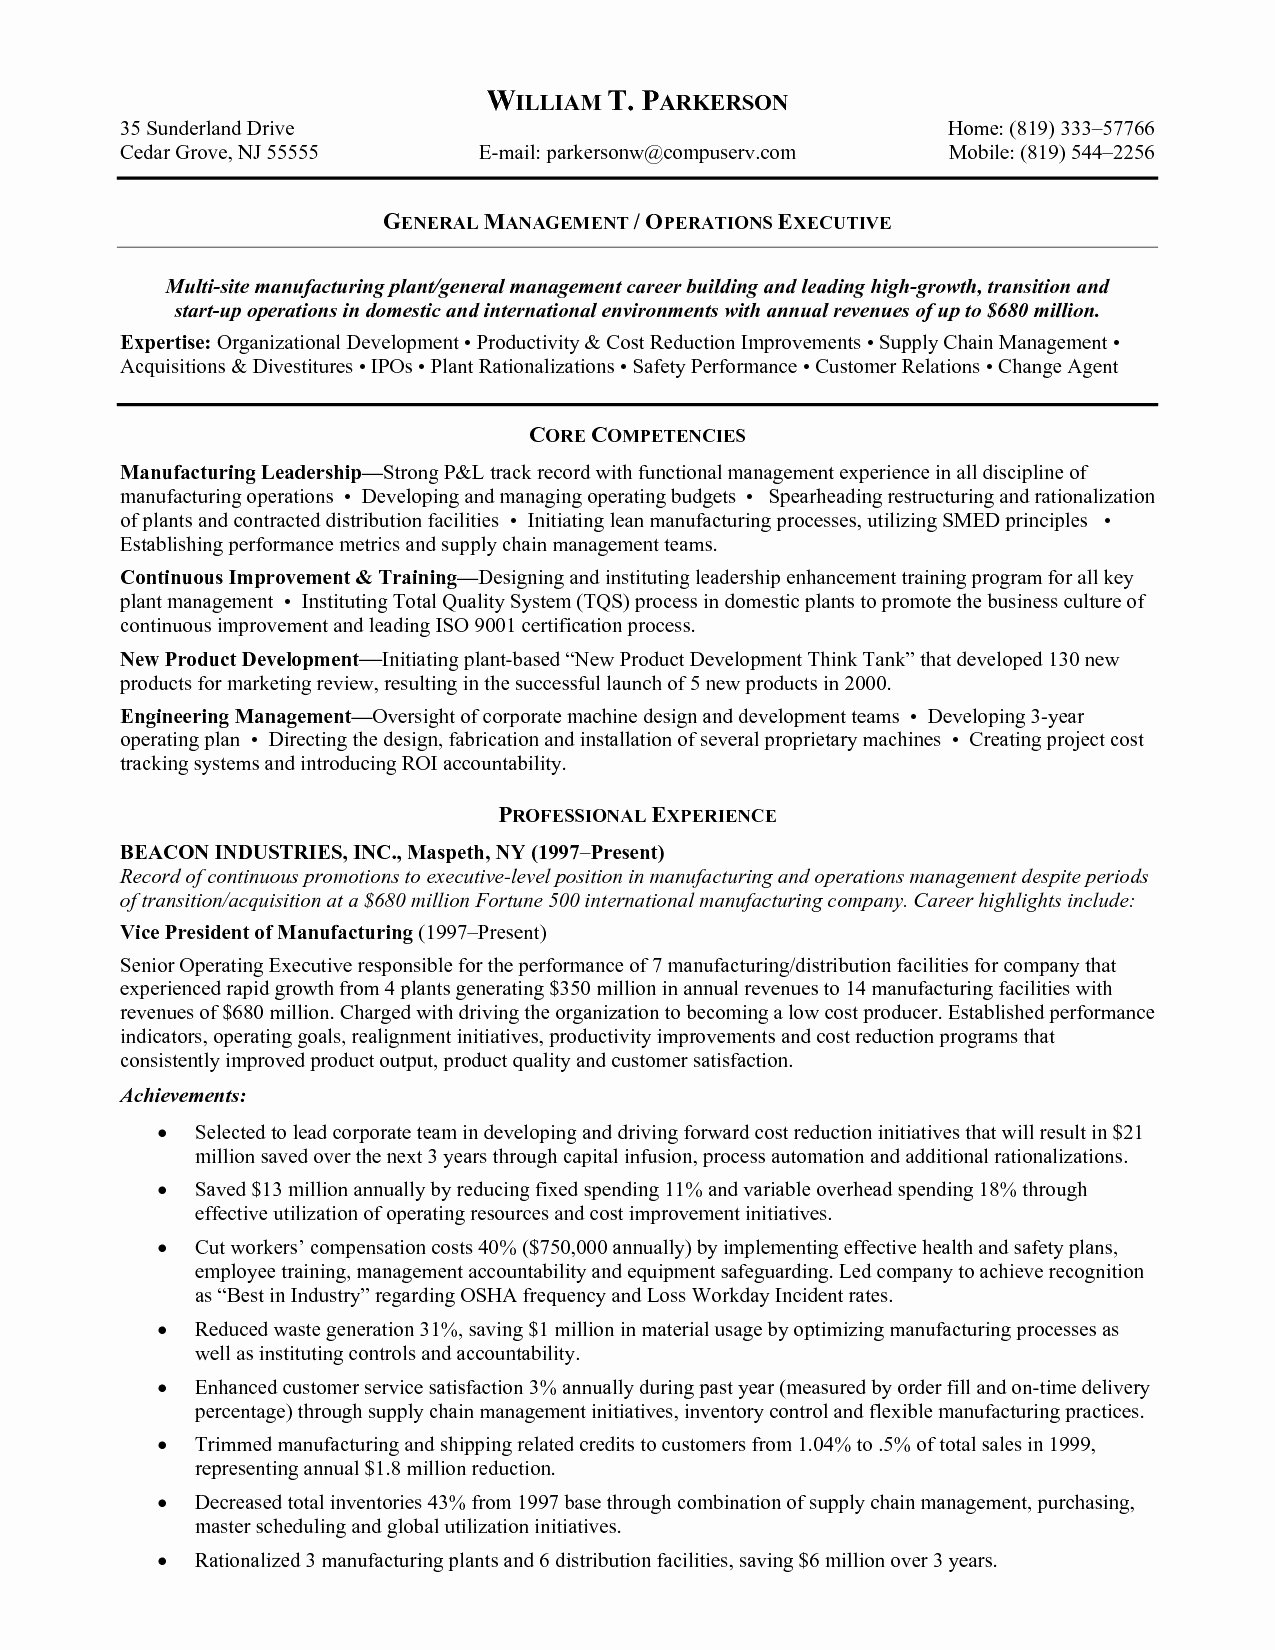 Popular Supply Chain Management Resume Objective